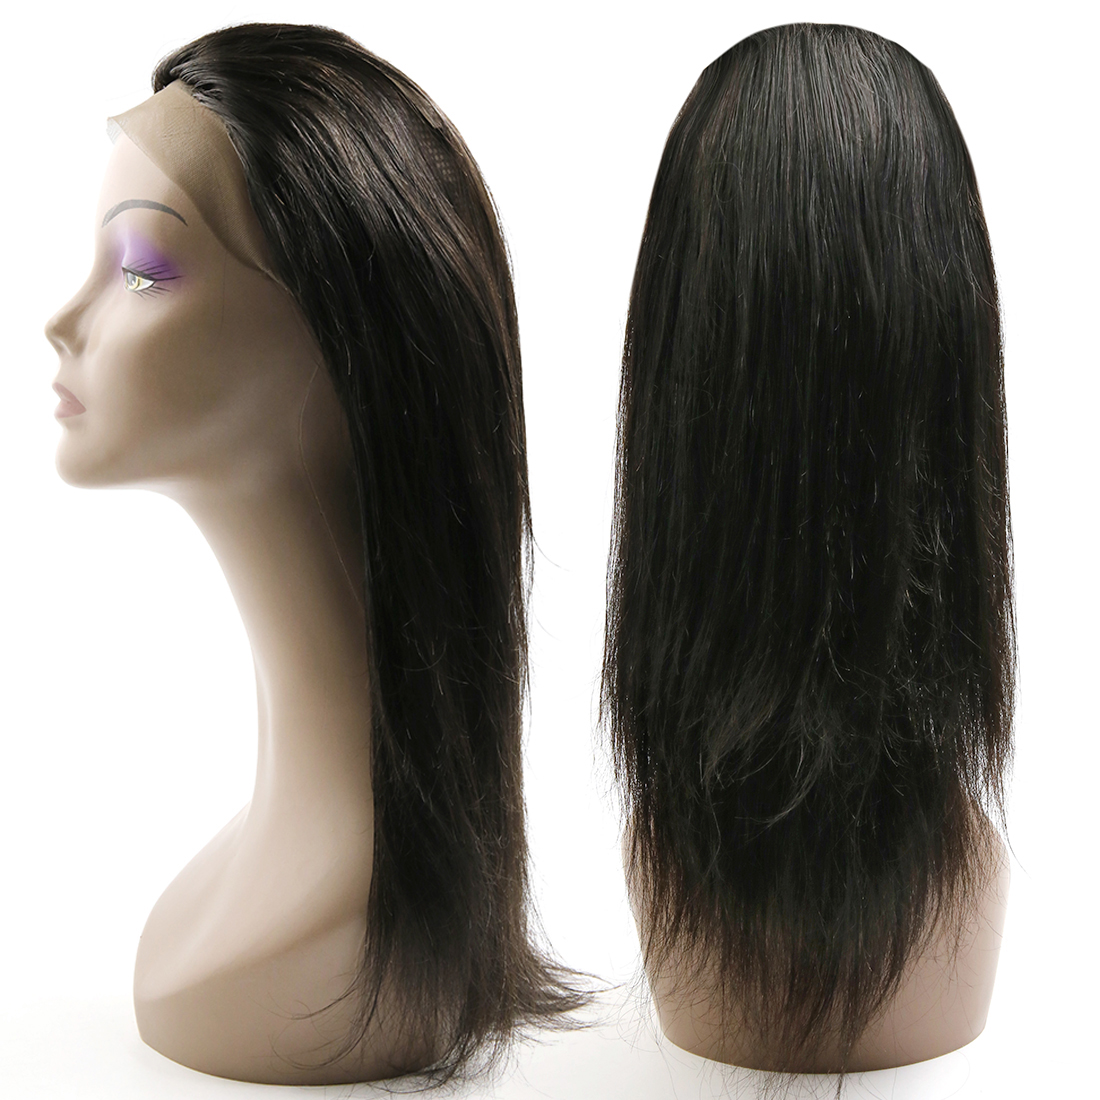 8-034-20-034-360-Invisible-Lace-Closure-Free-Part-Human-Hair-Extensions-Body-Wave